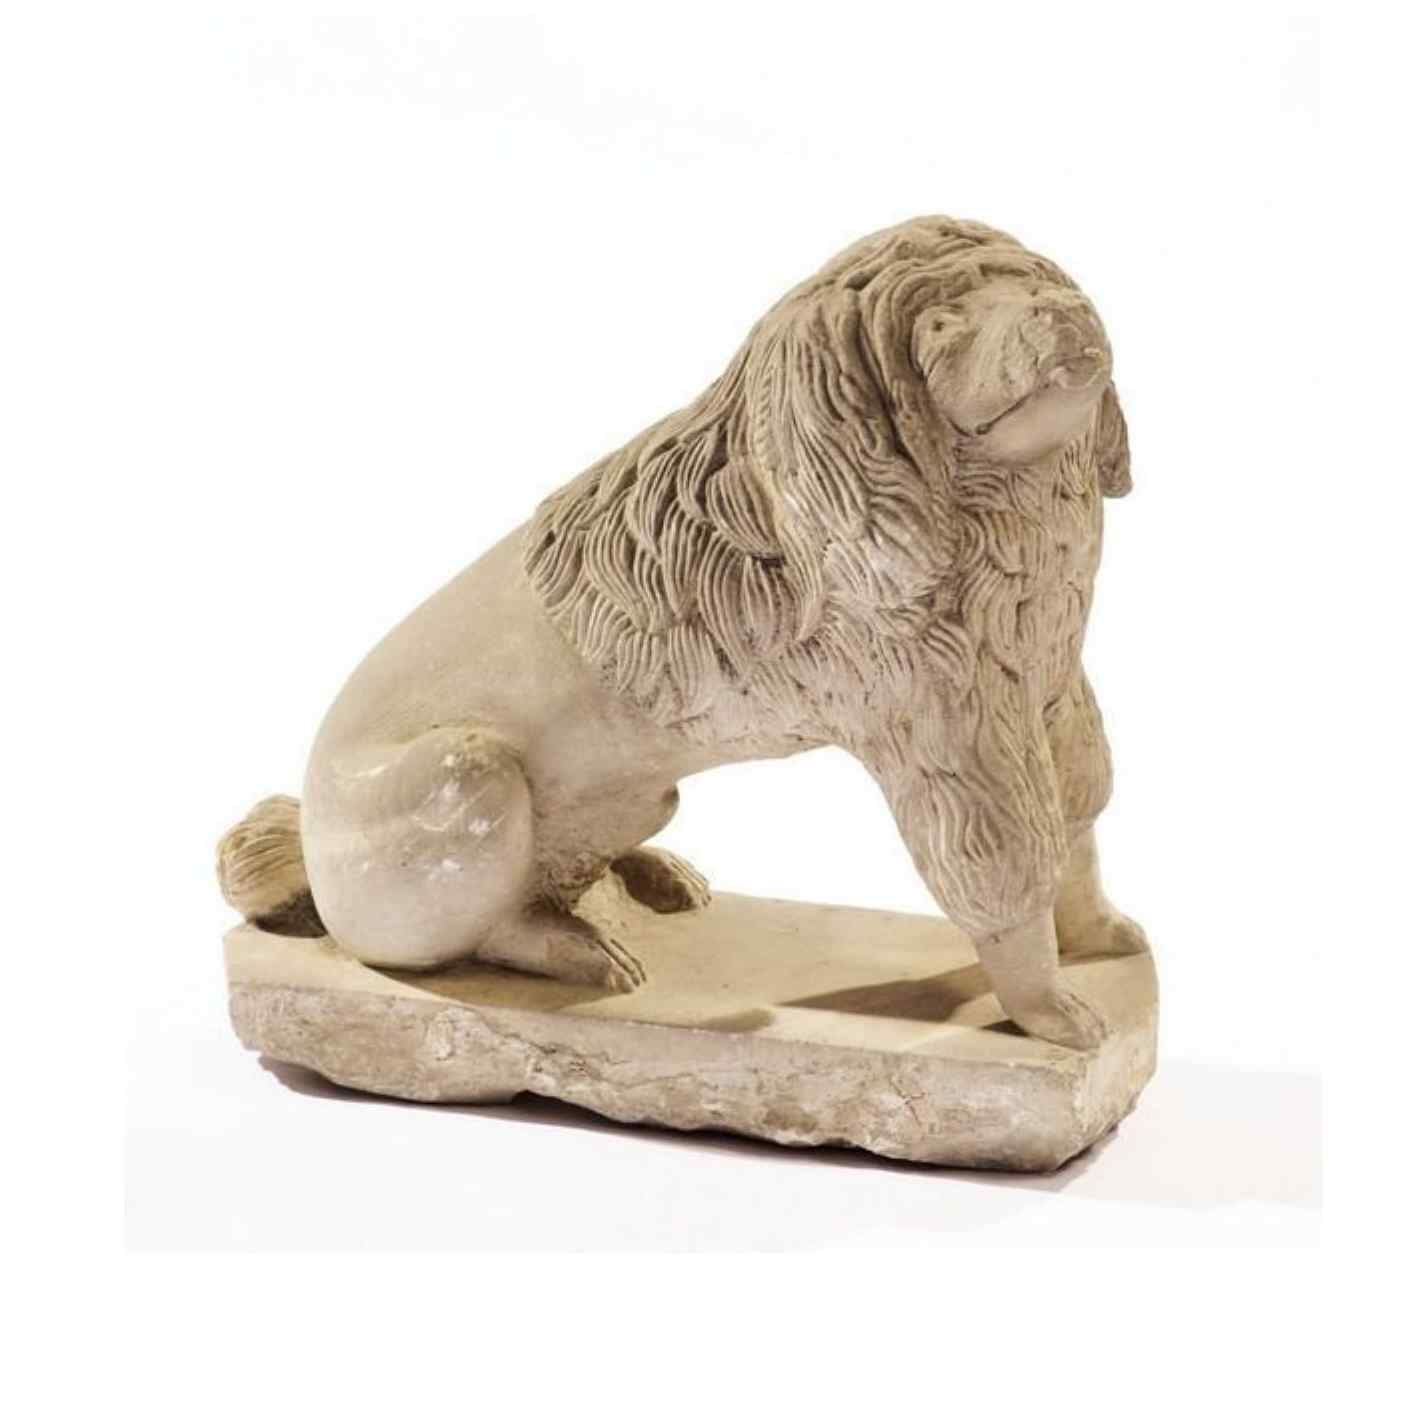 Rare sculpture of a dog in stone from the Romanesque period